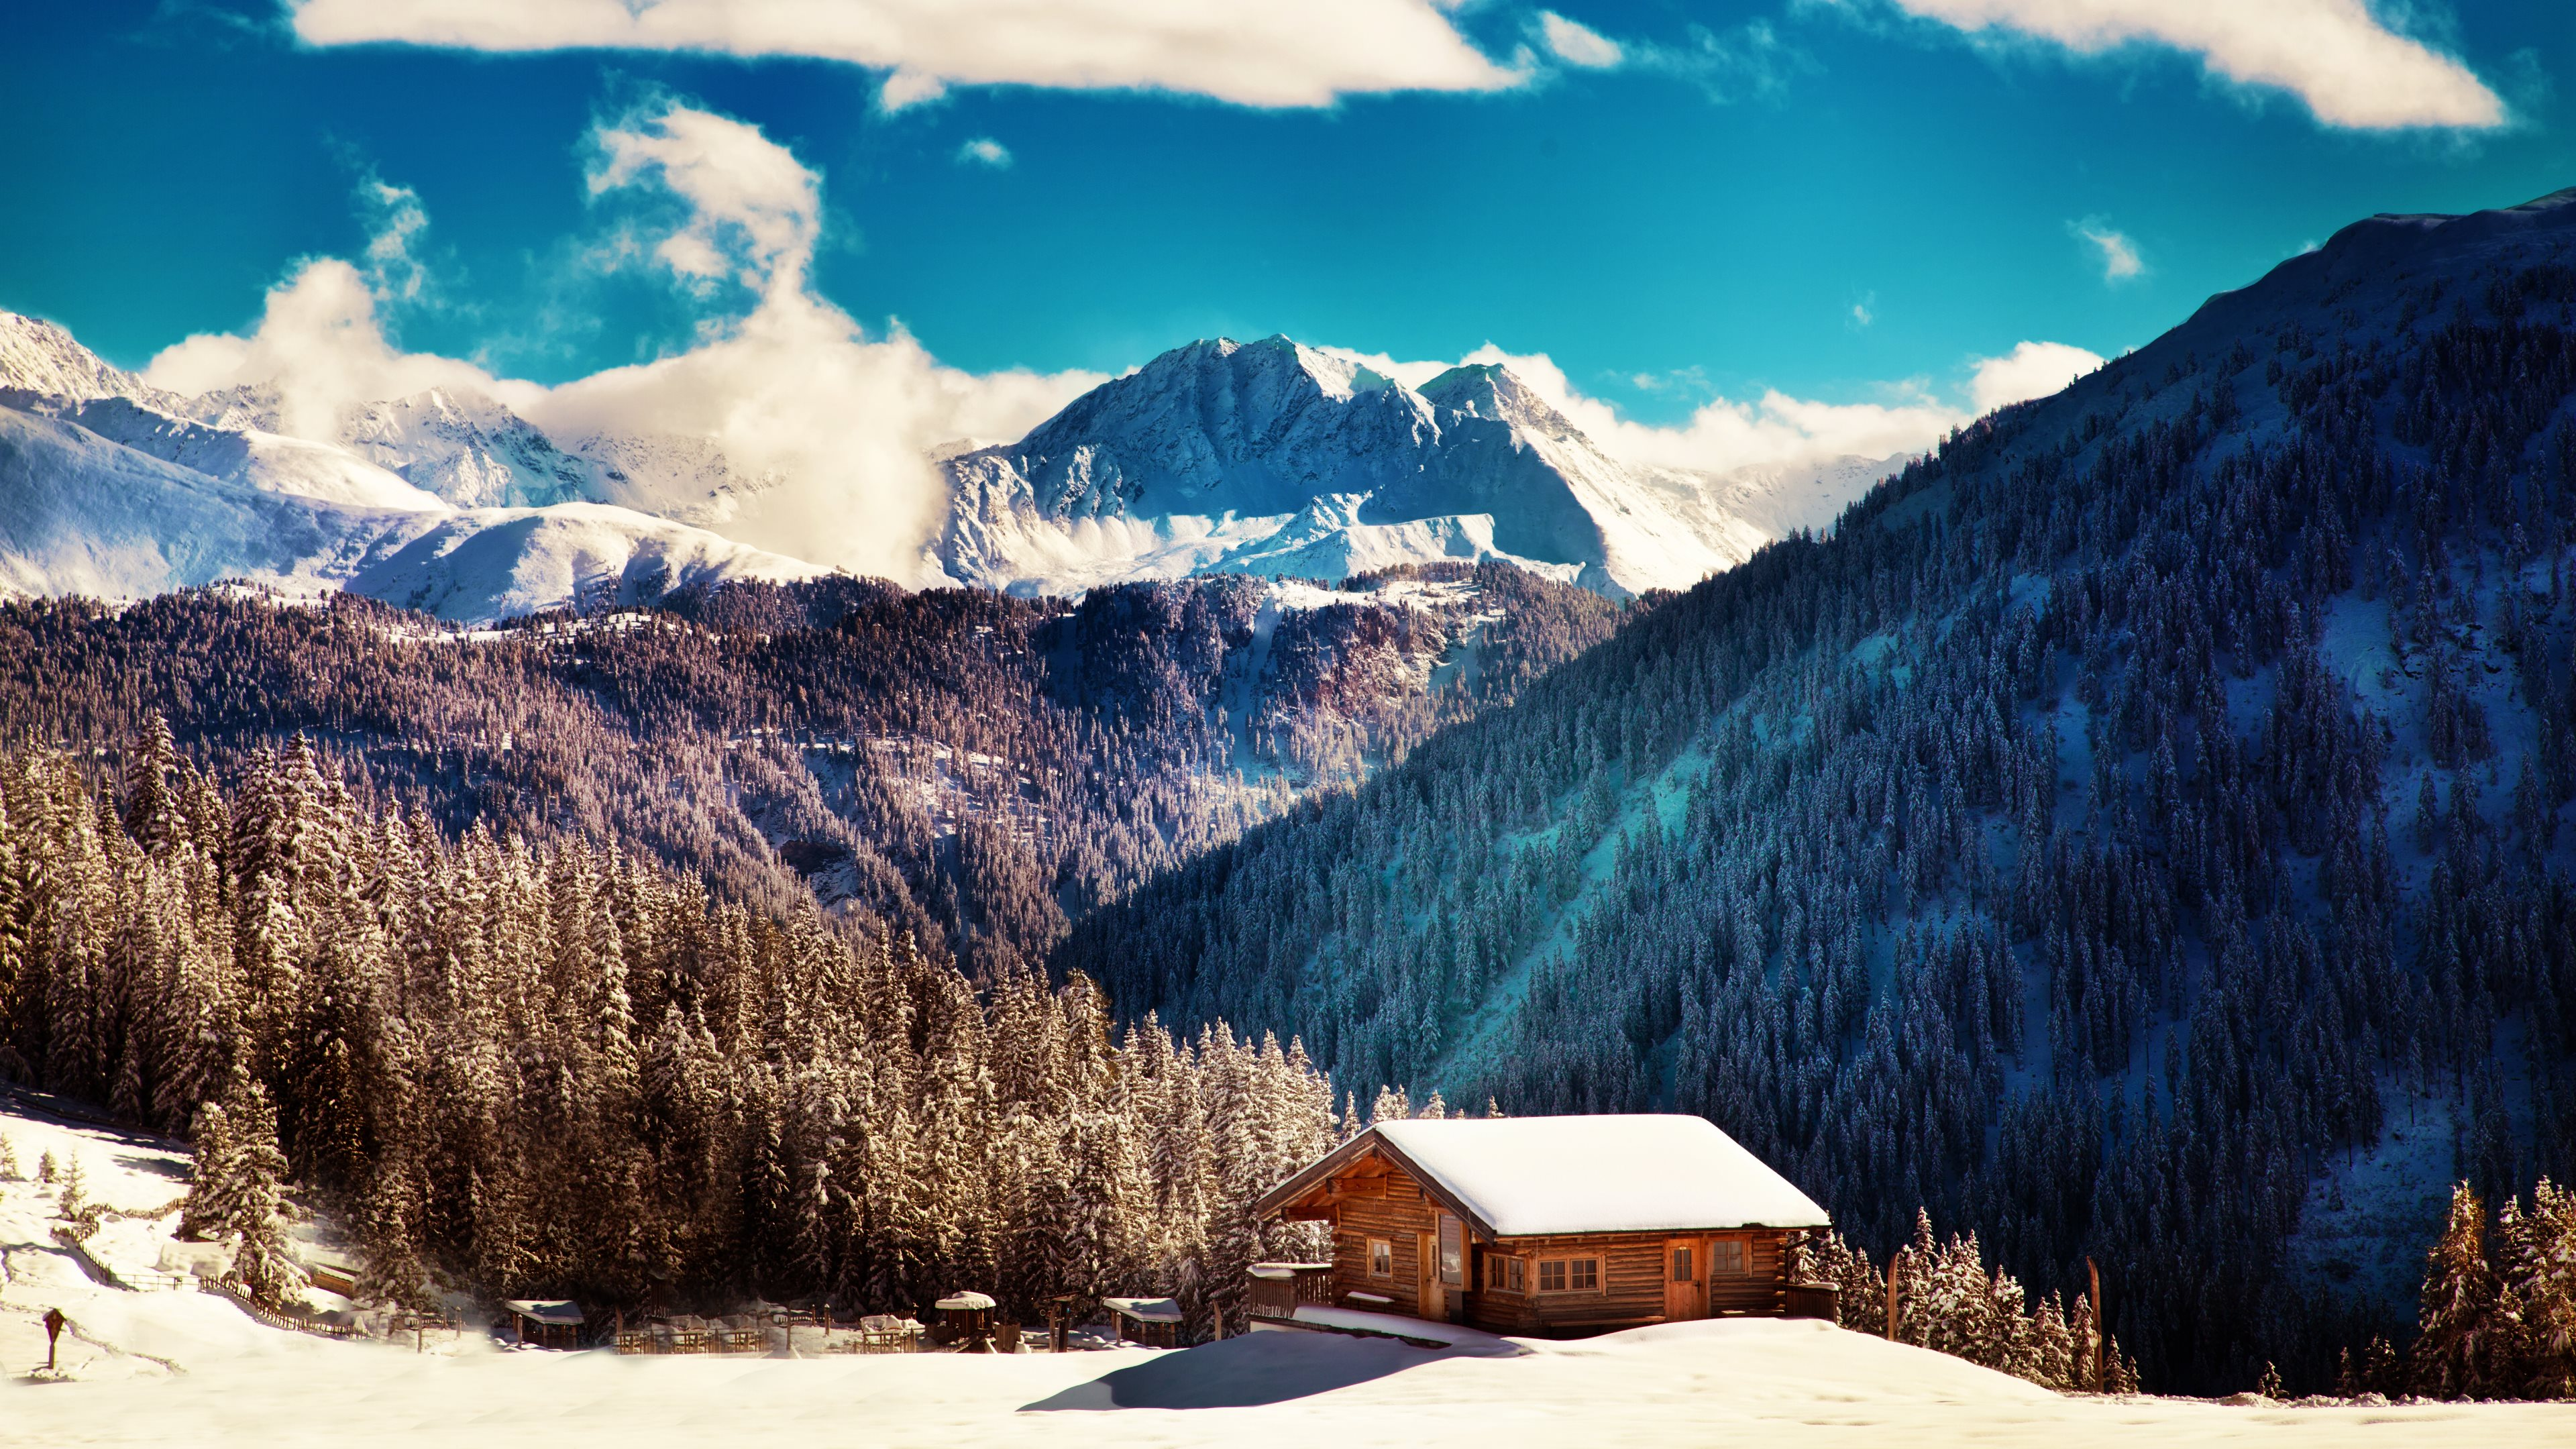 4k Winter Wallpapers High Quality Download Free